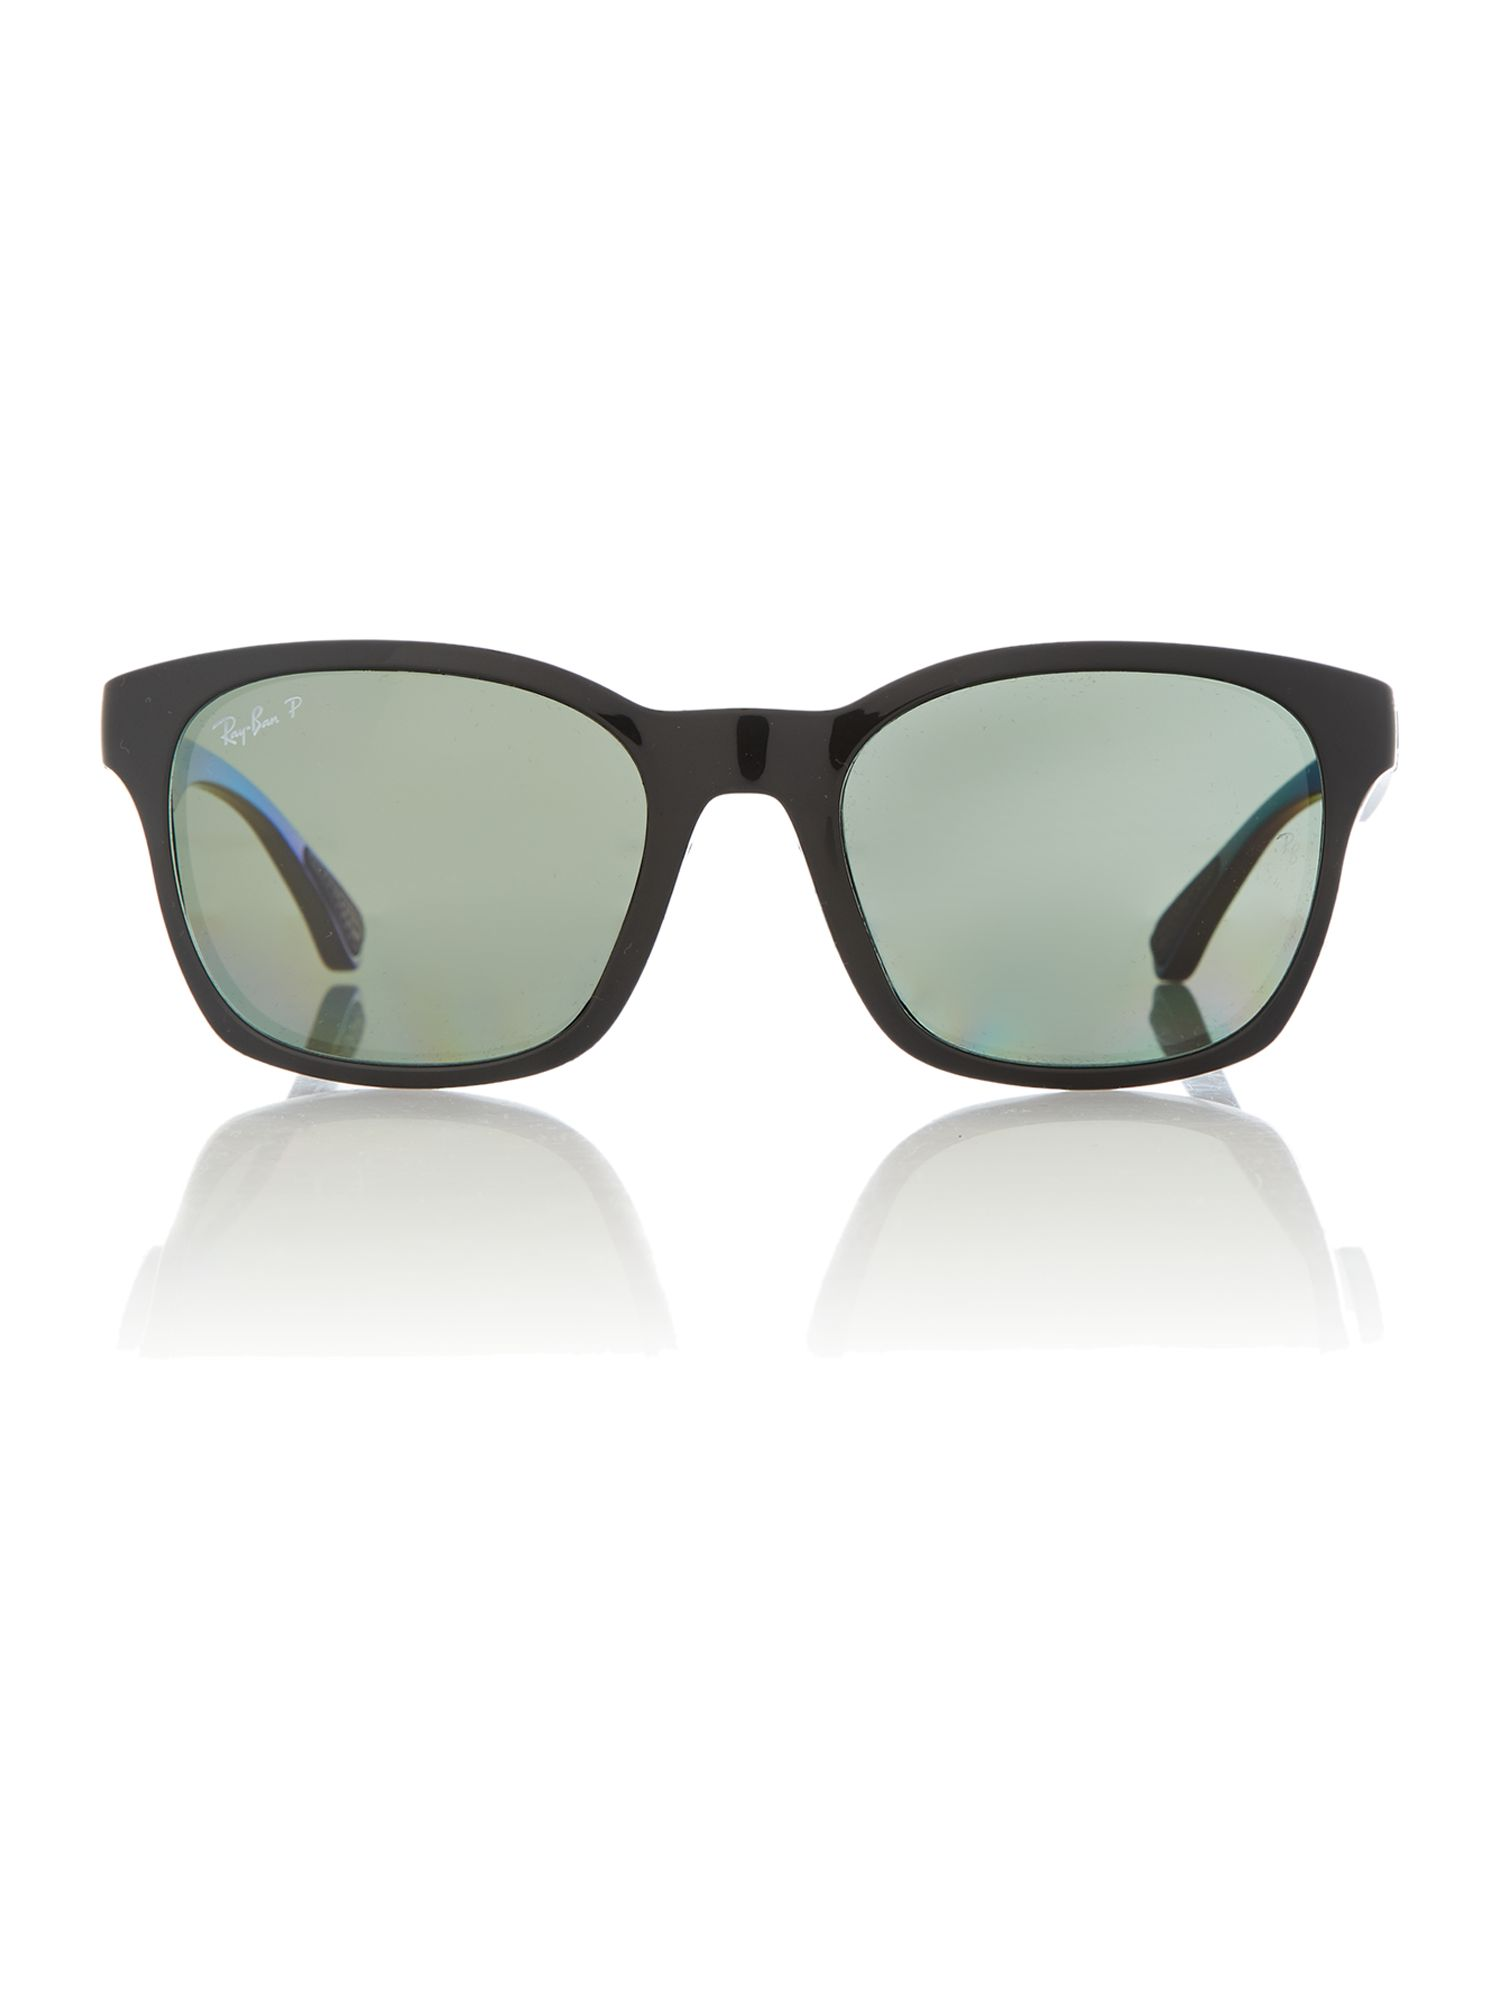 Men`s wayfarer sunglasses